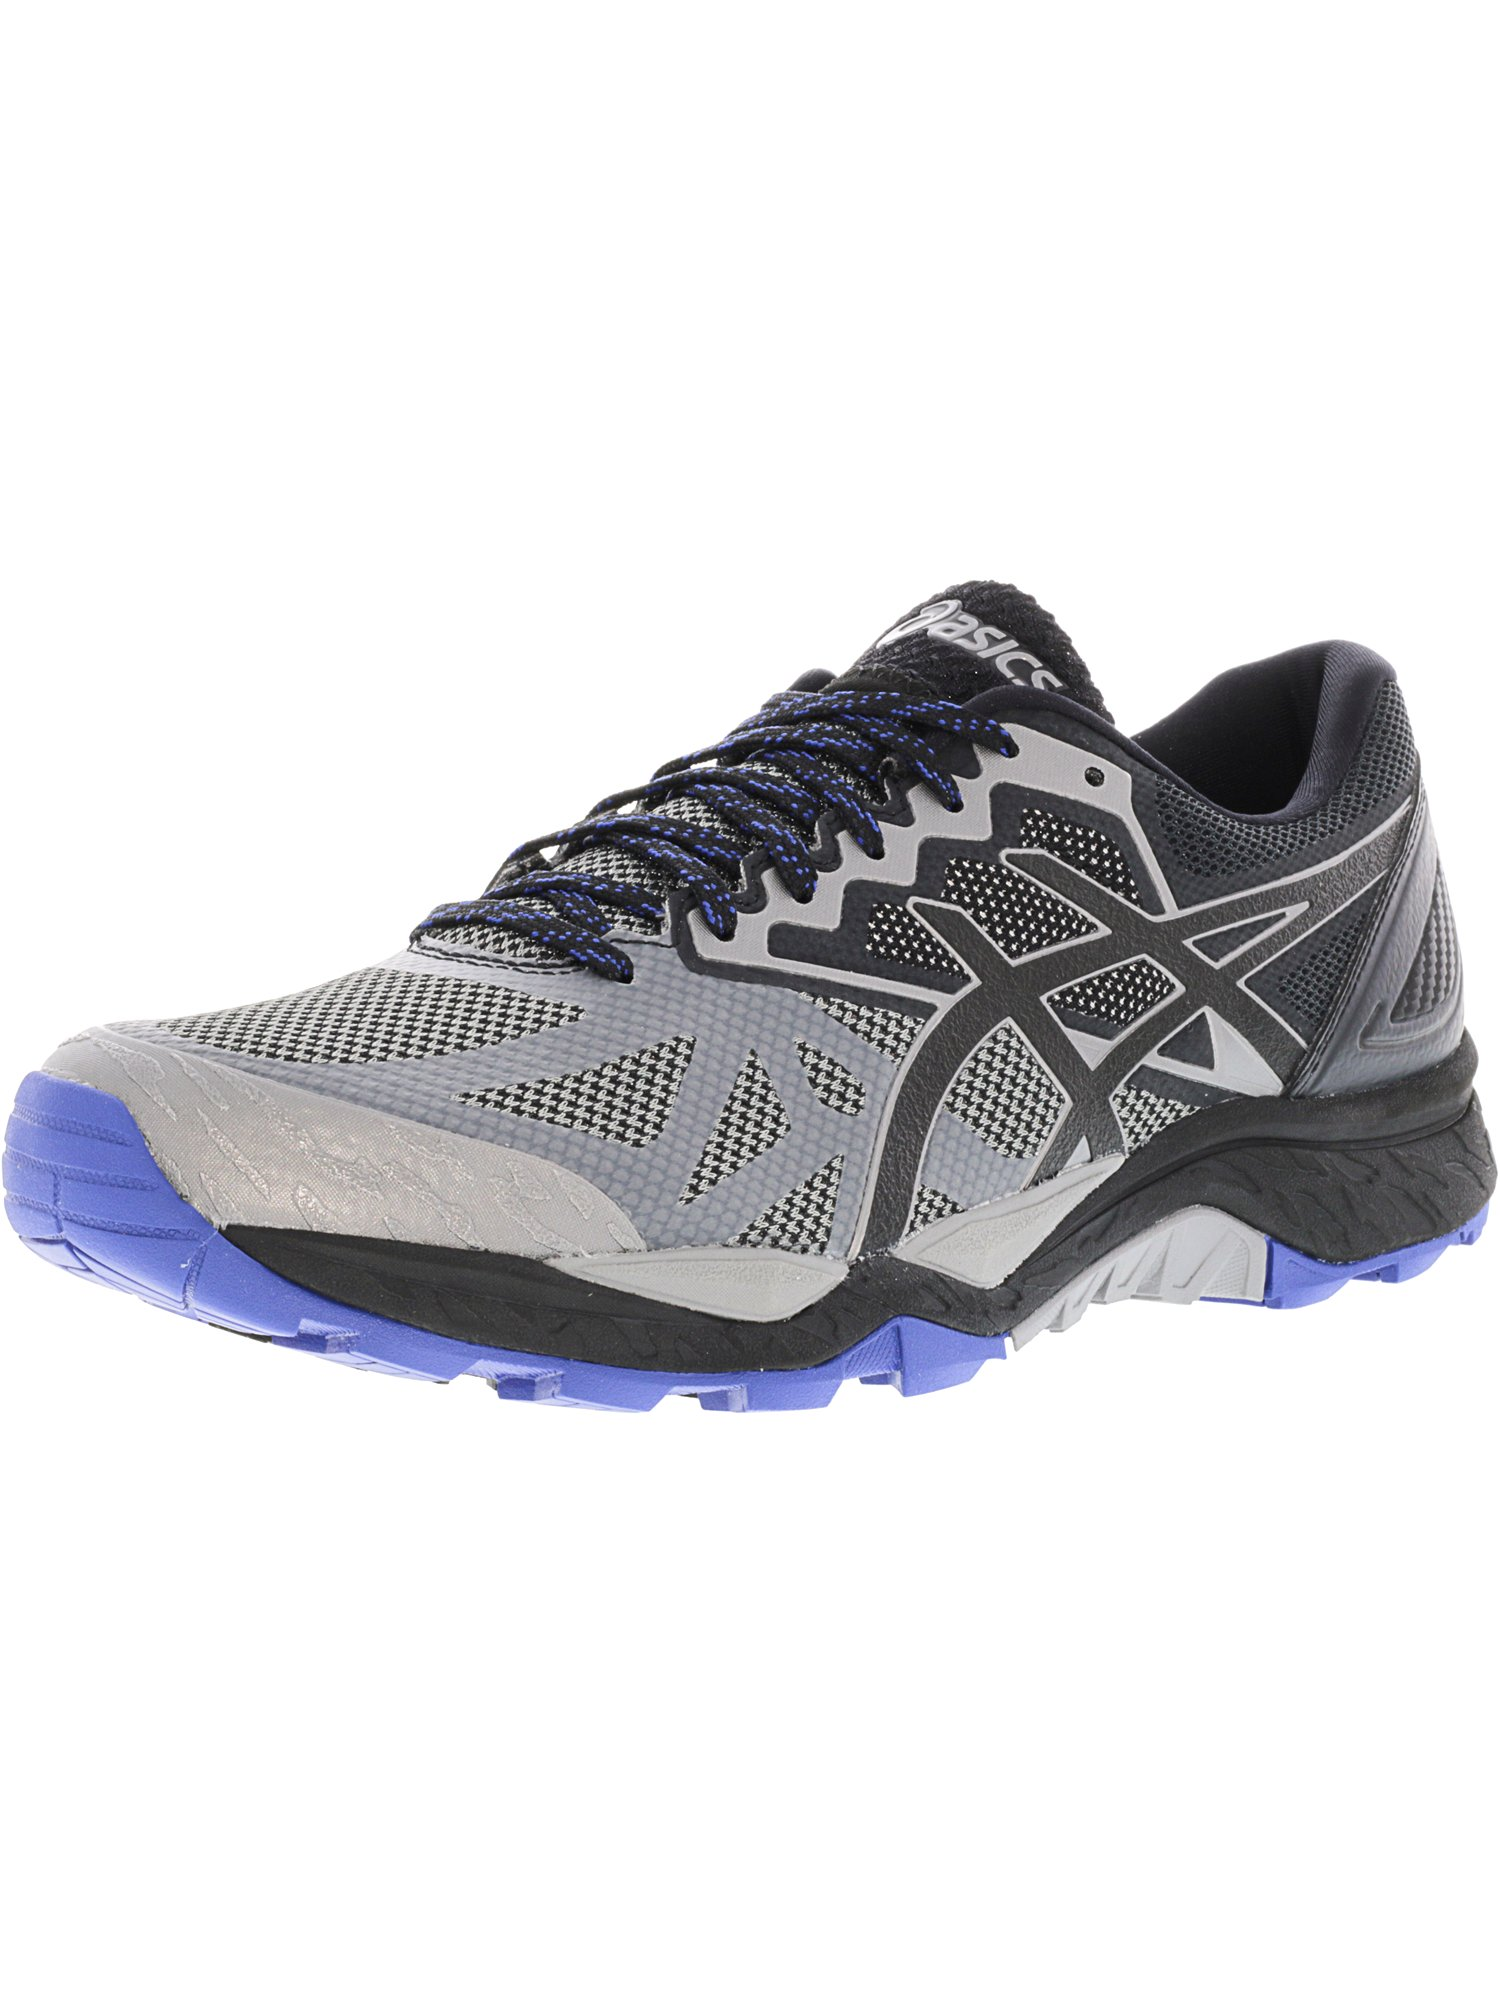 Asics Men's Gel-Fujitrabuco 6 Aluminum / Black Limoges Ankle-High Running Shoe - 8.5M